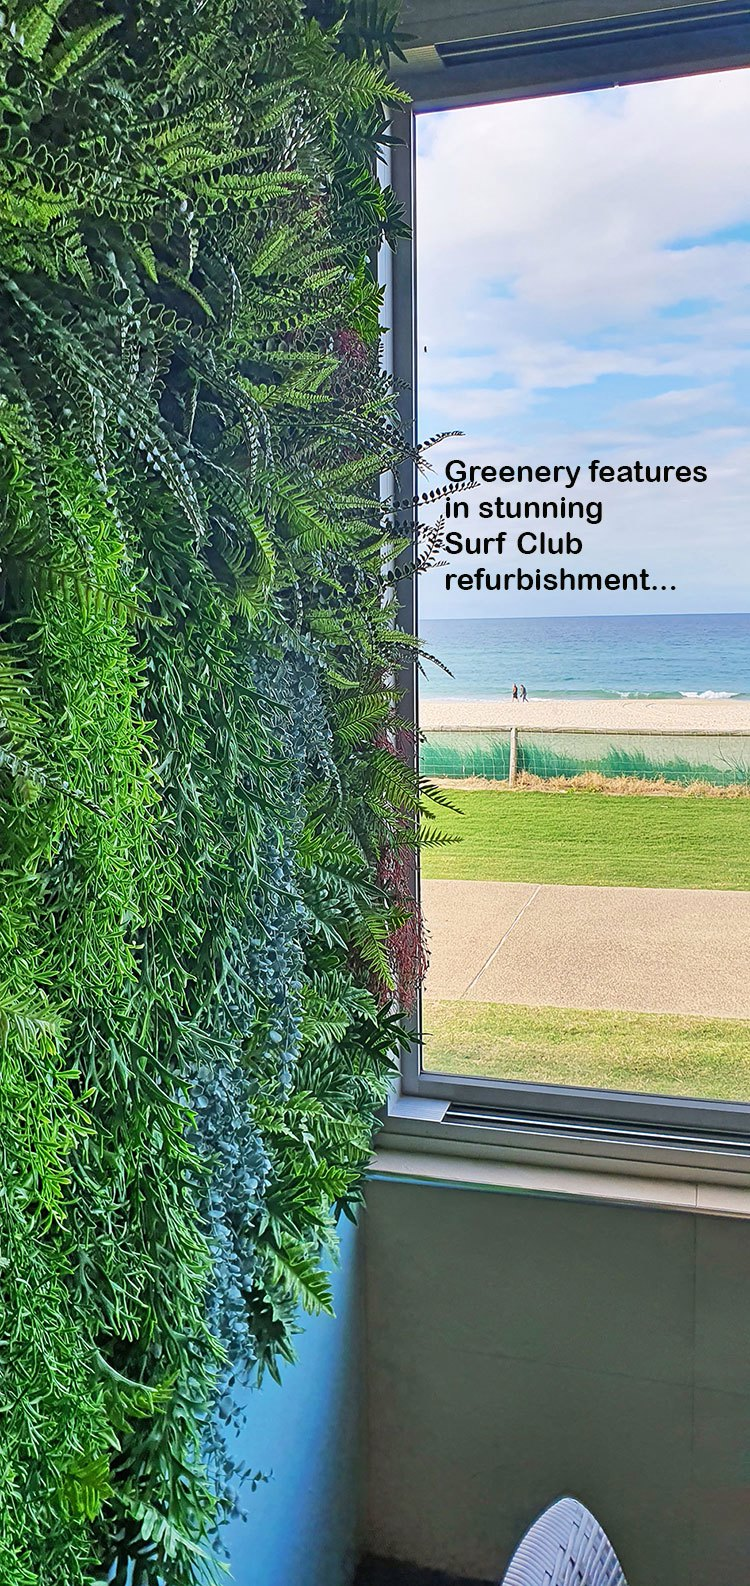 Greenery features in great Surf Club renovation...